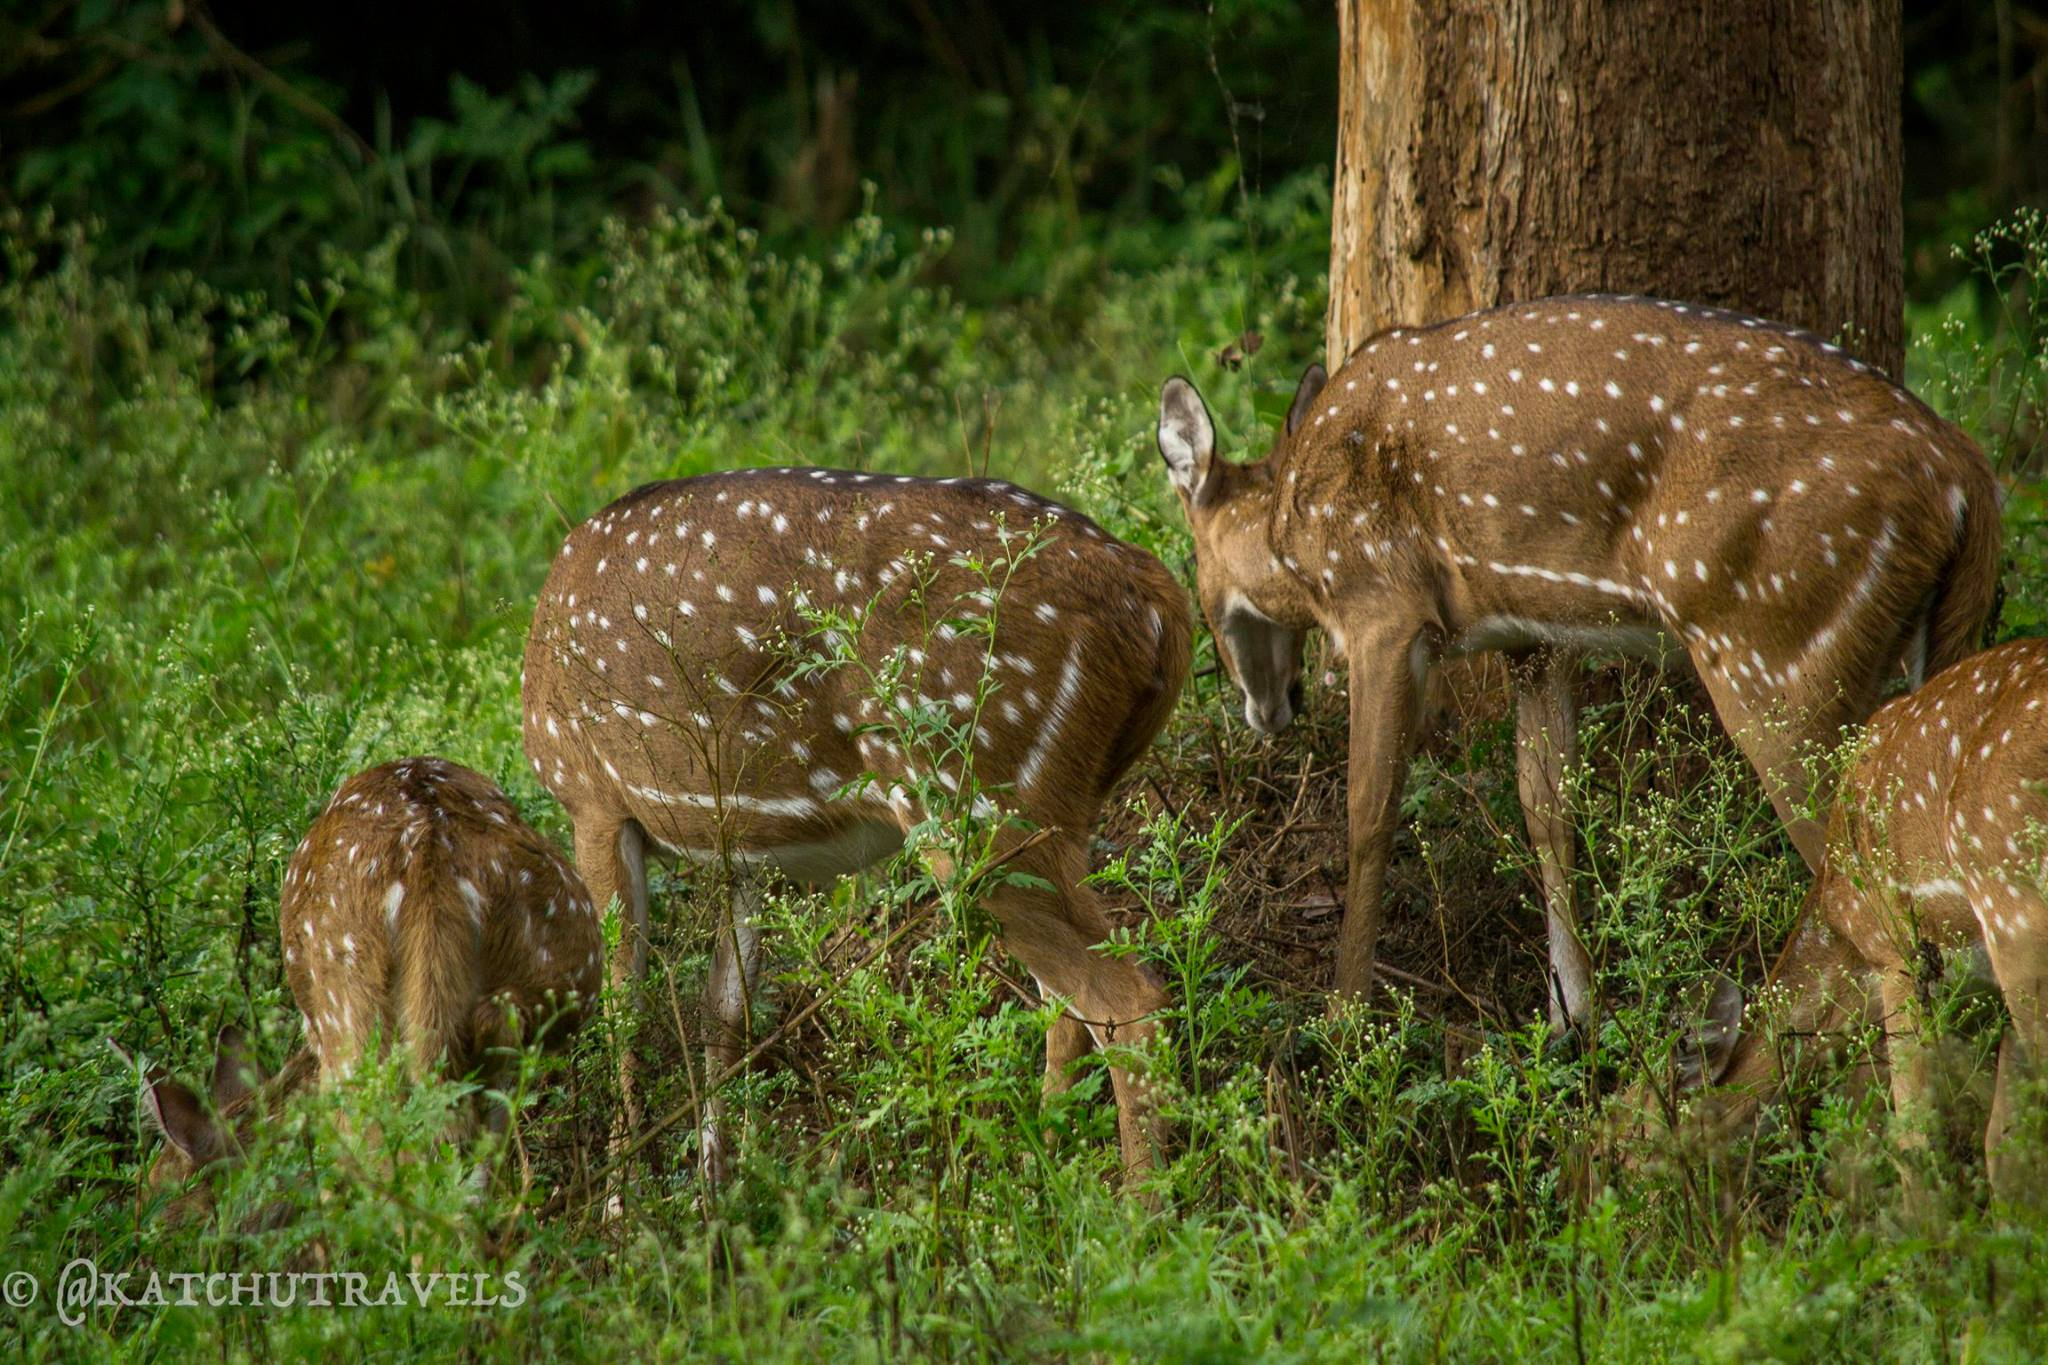 Spotted Deers in Nagarhole